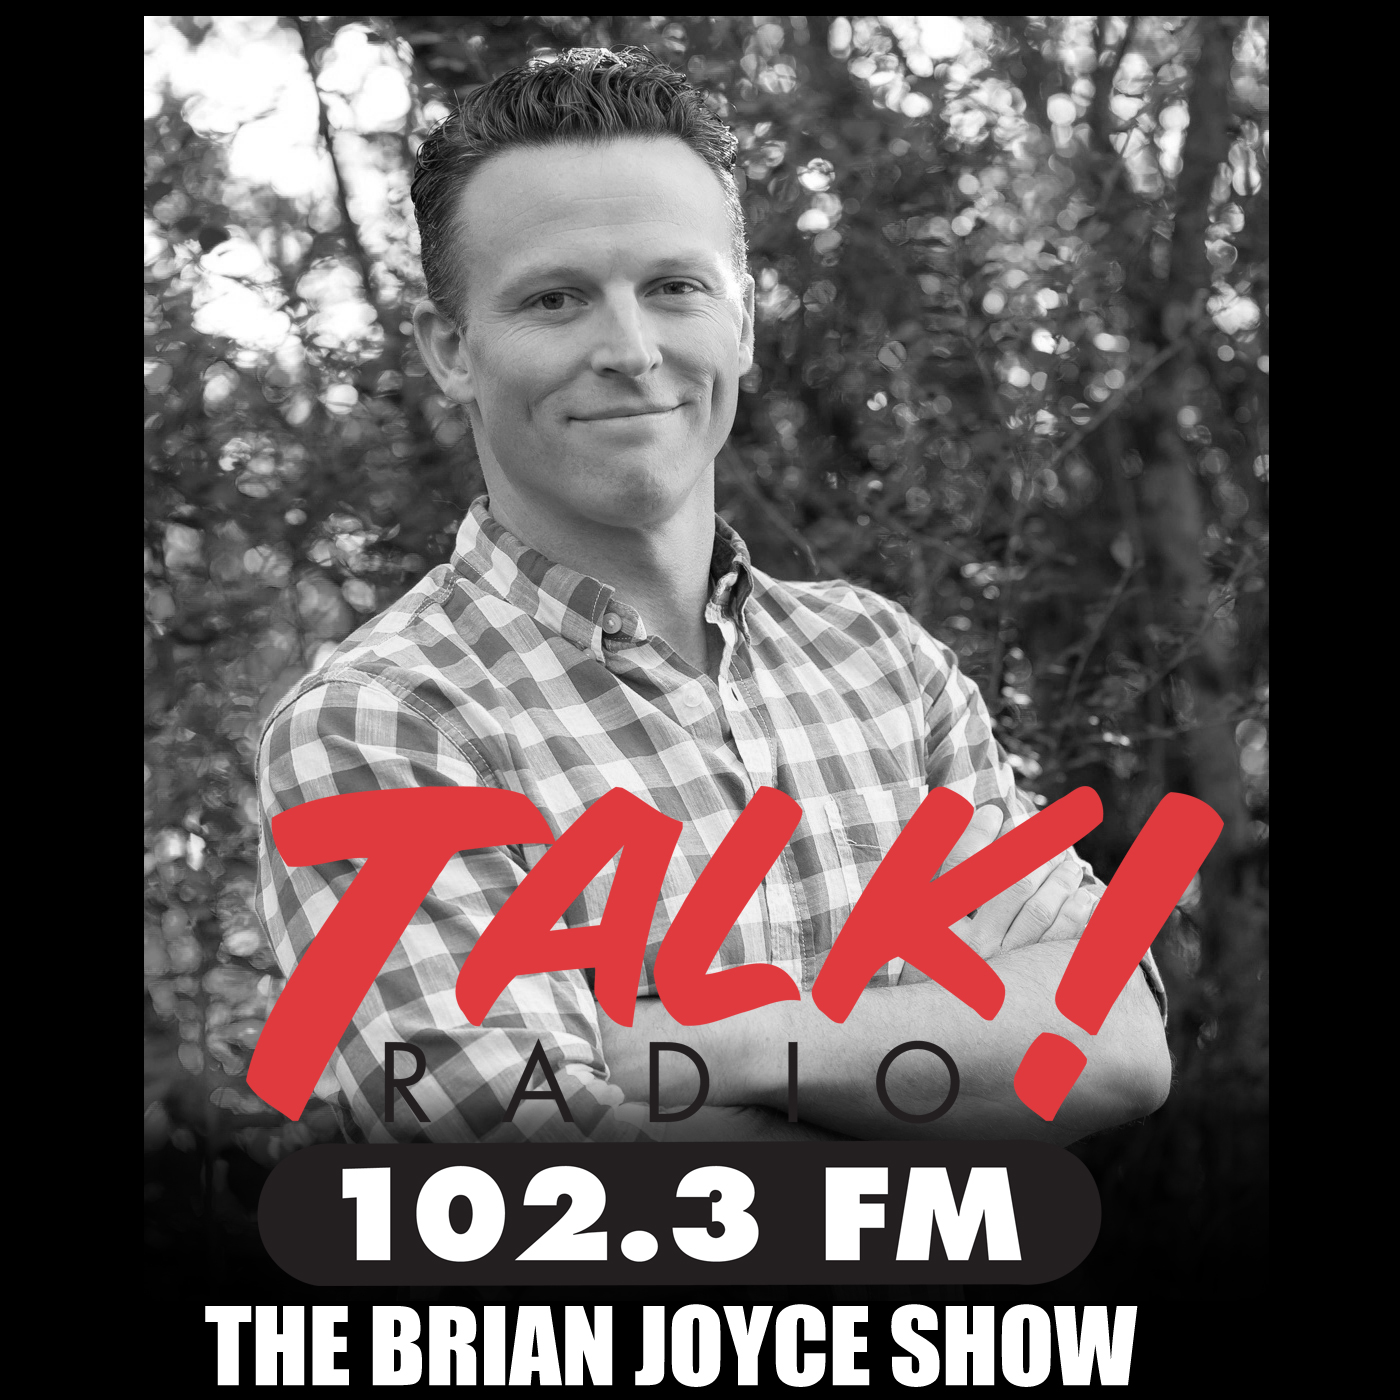 The Brian Joyce Show Podcasts